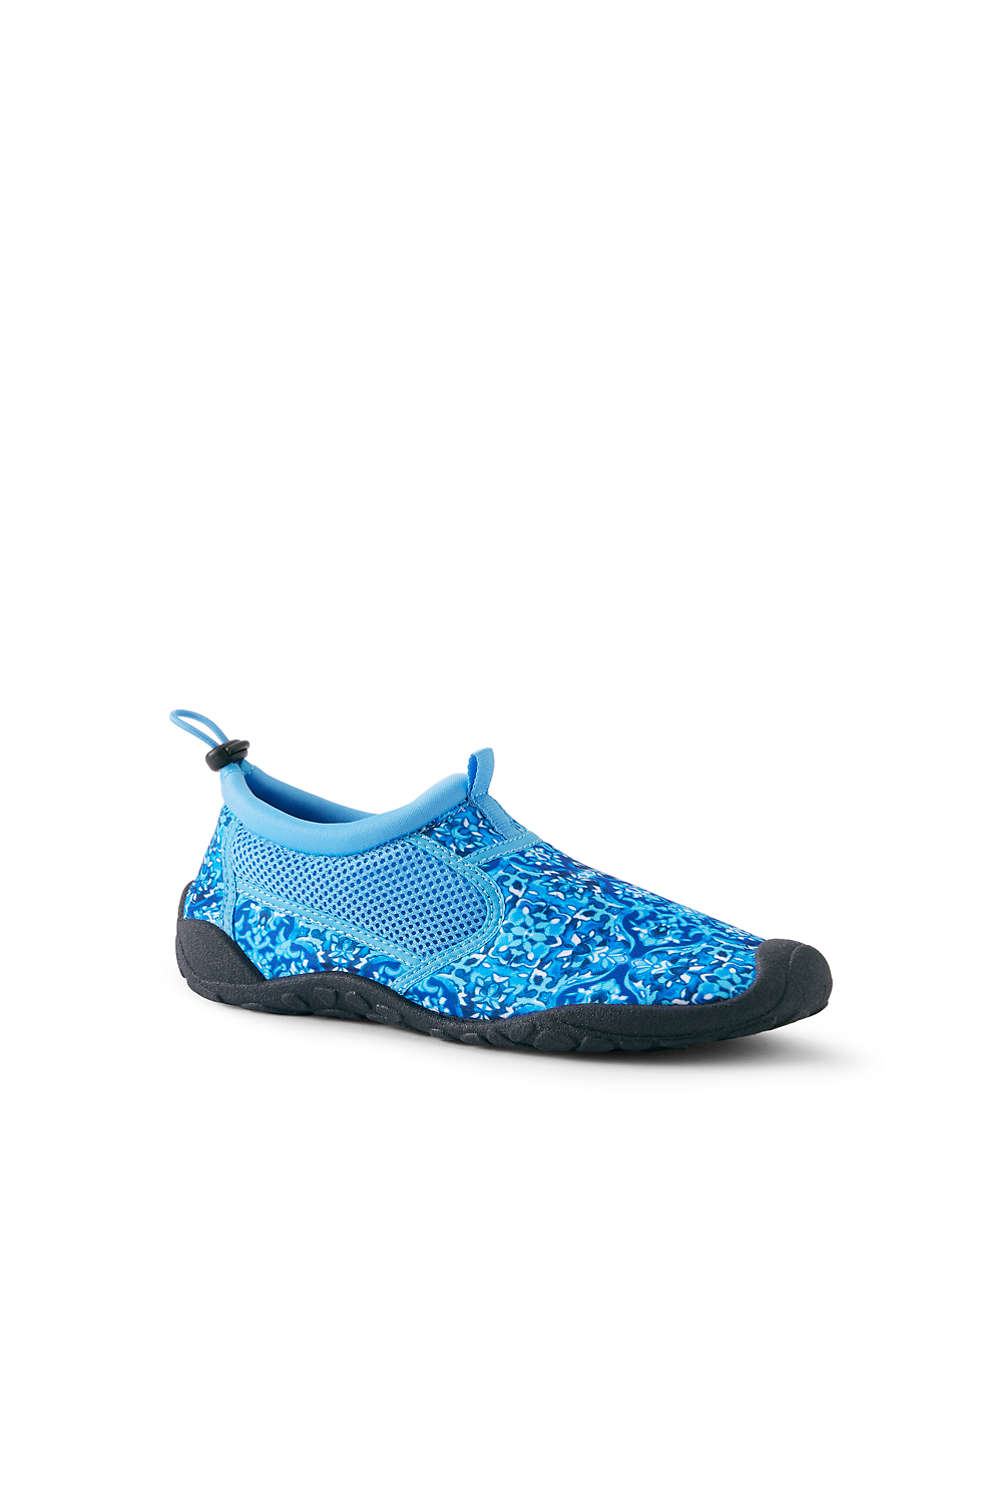 2a4bbdc308 Women s Slip-on Water Shoes from Lands  End